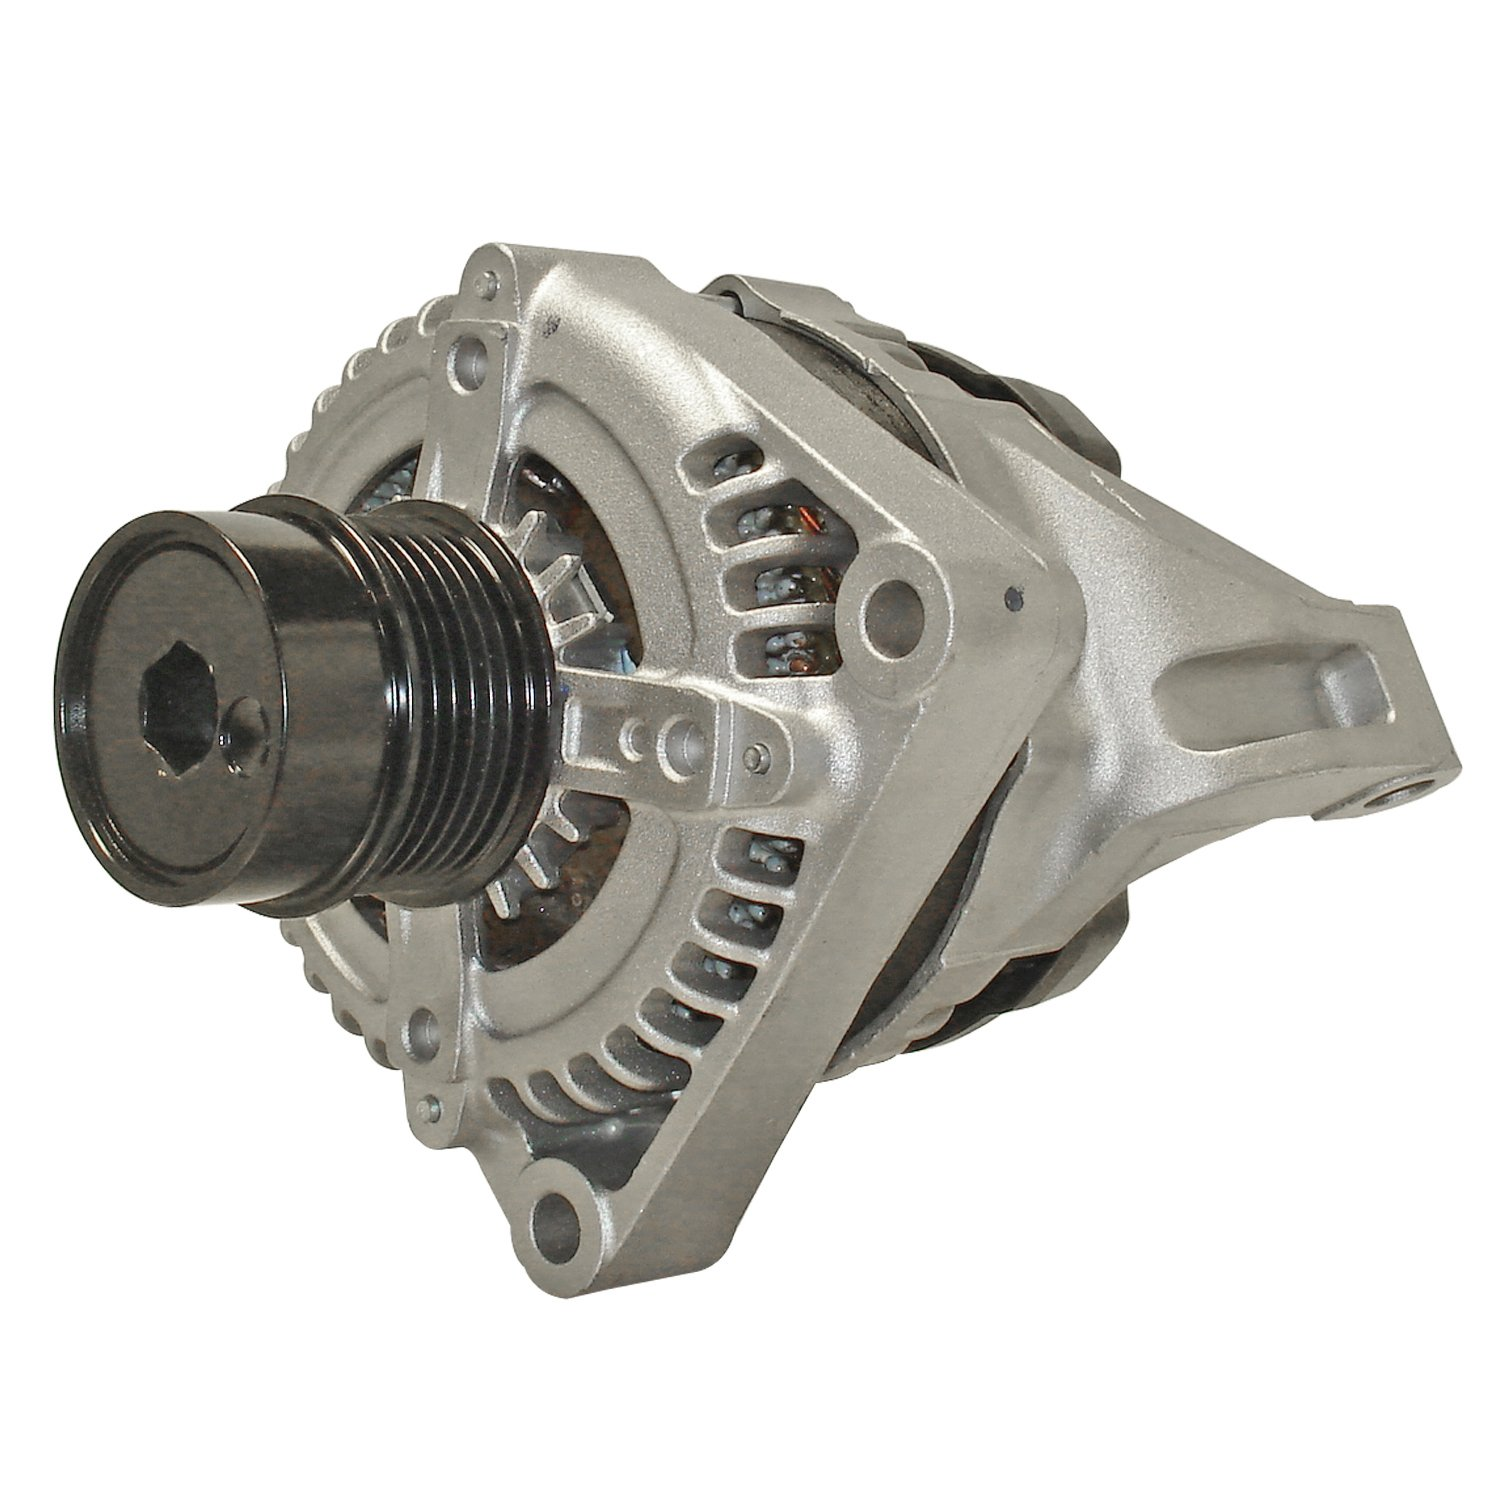 ACDelco 334-1405 Professional Alternator, Remanufactured by ACDelco